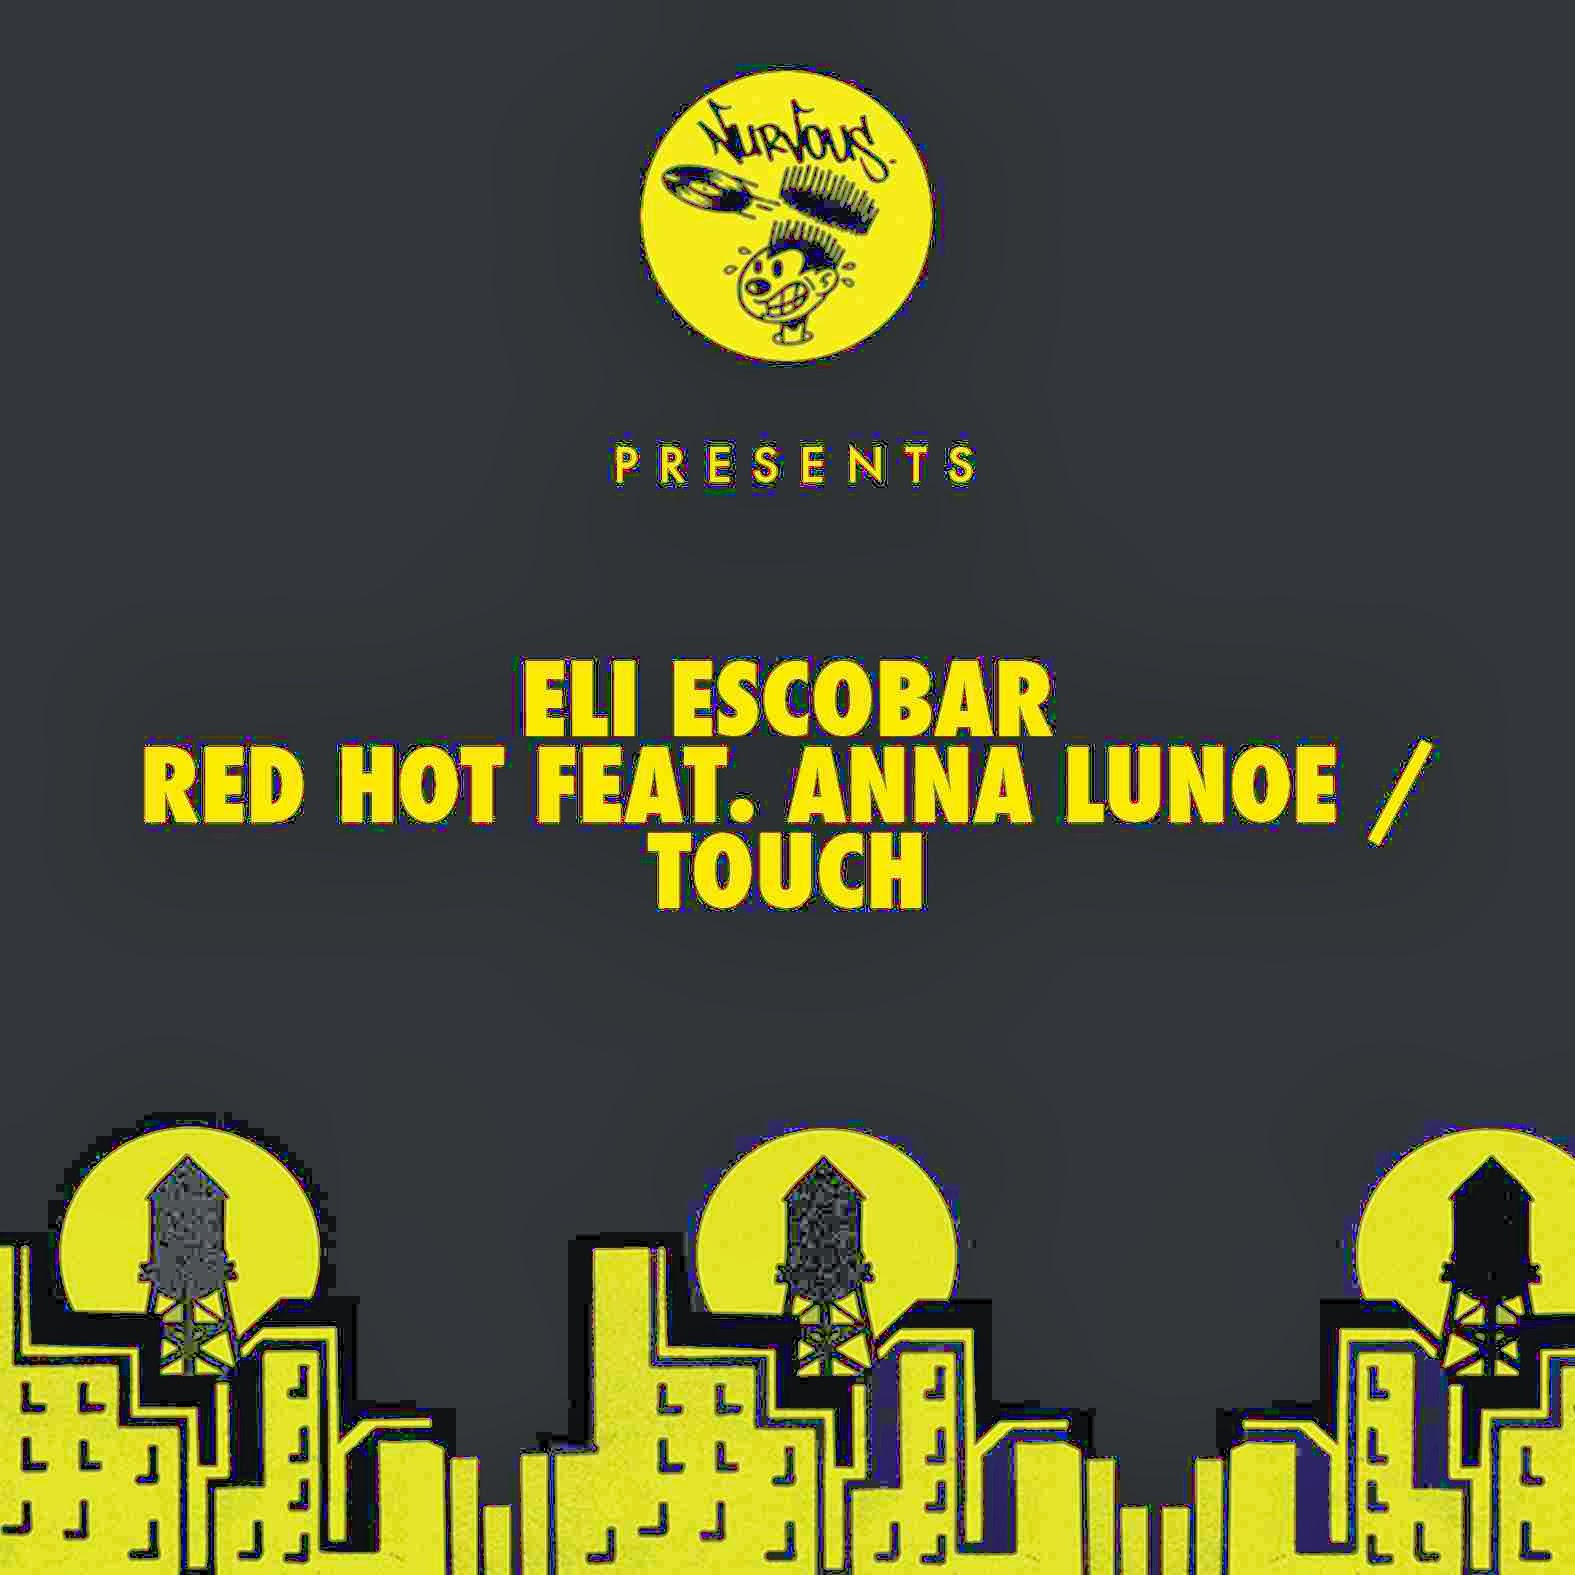 Eli Escobar  – Red hot feat. Anna Lunoe / touch